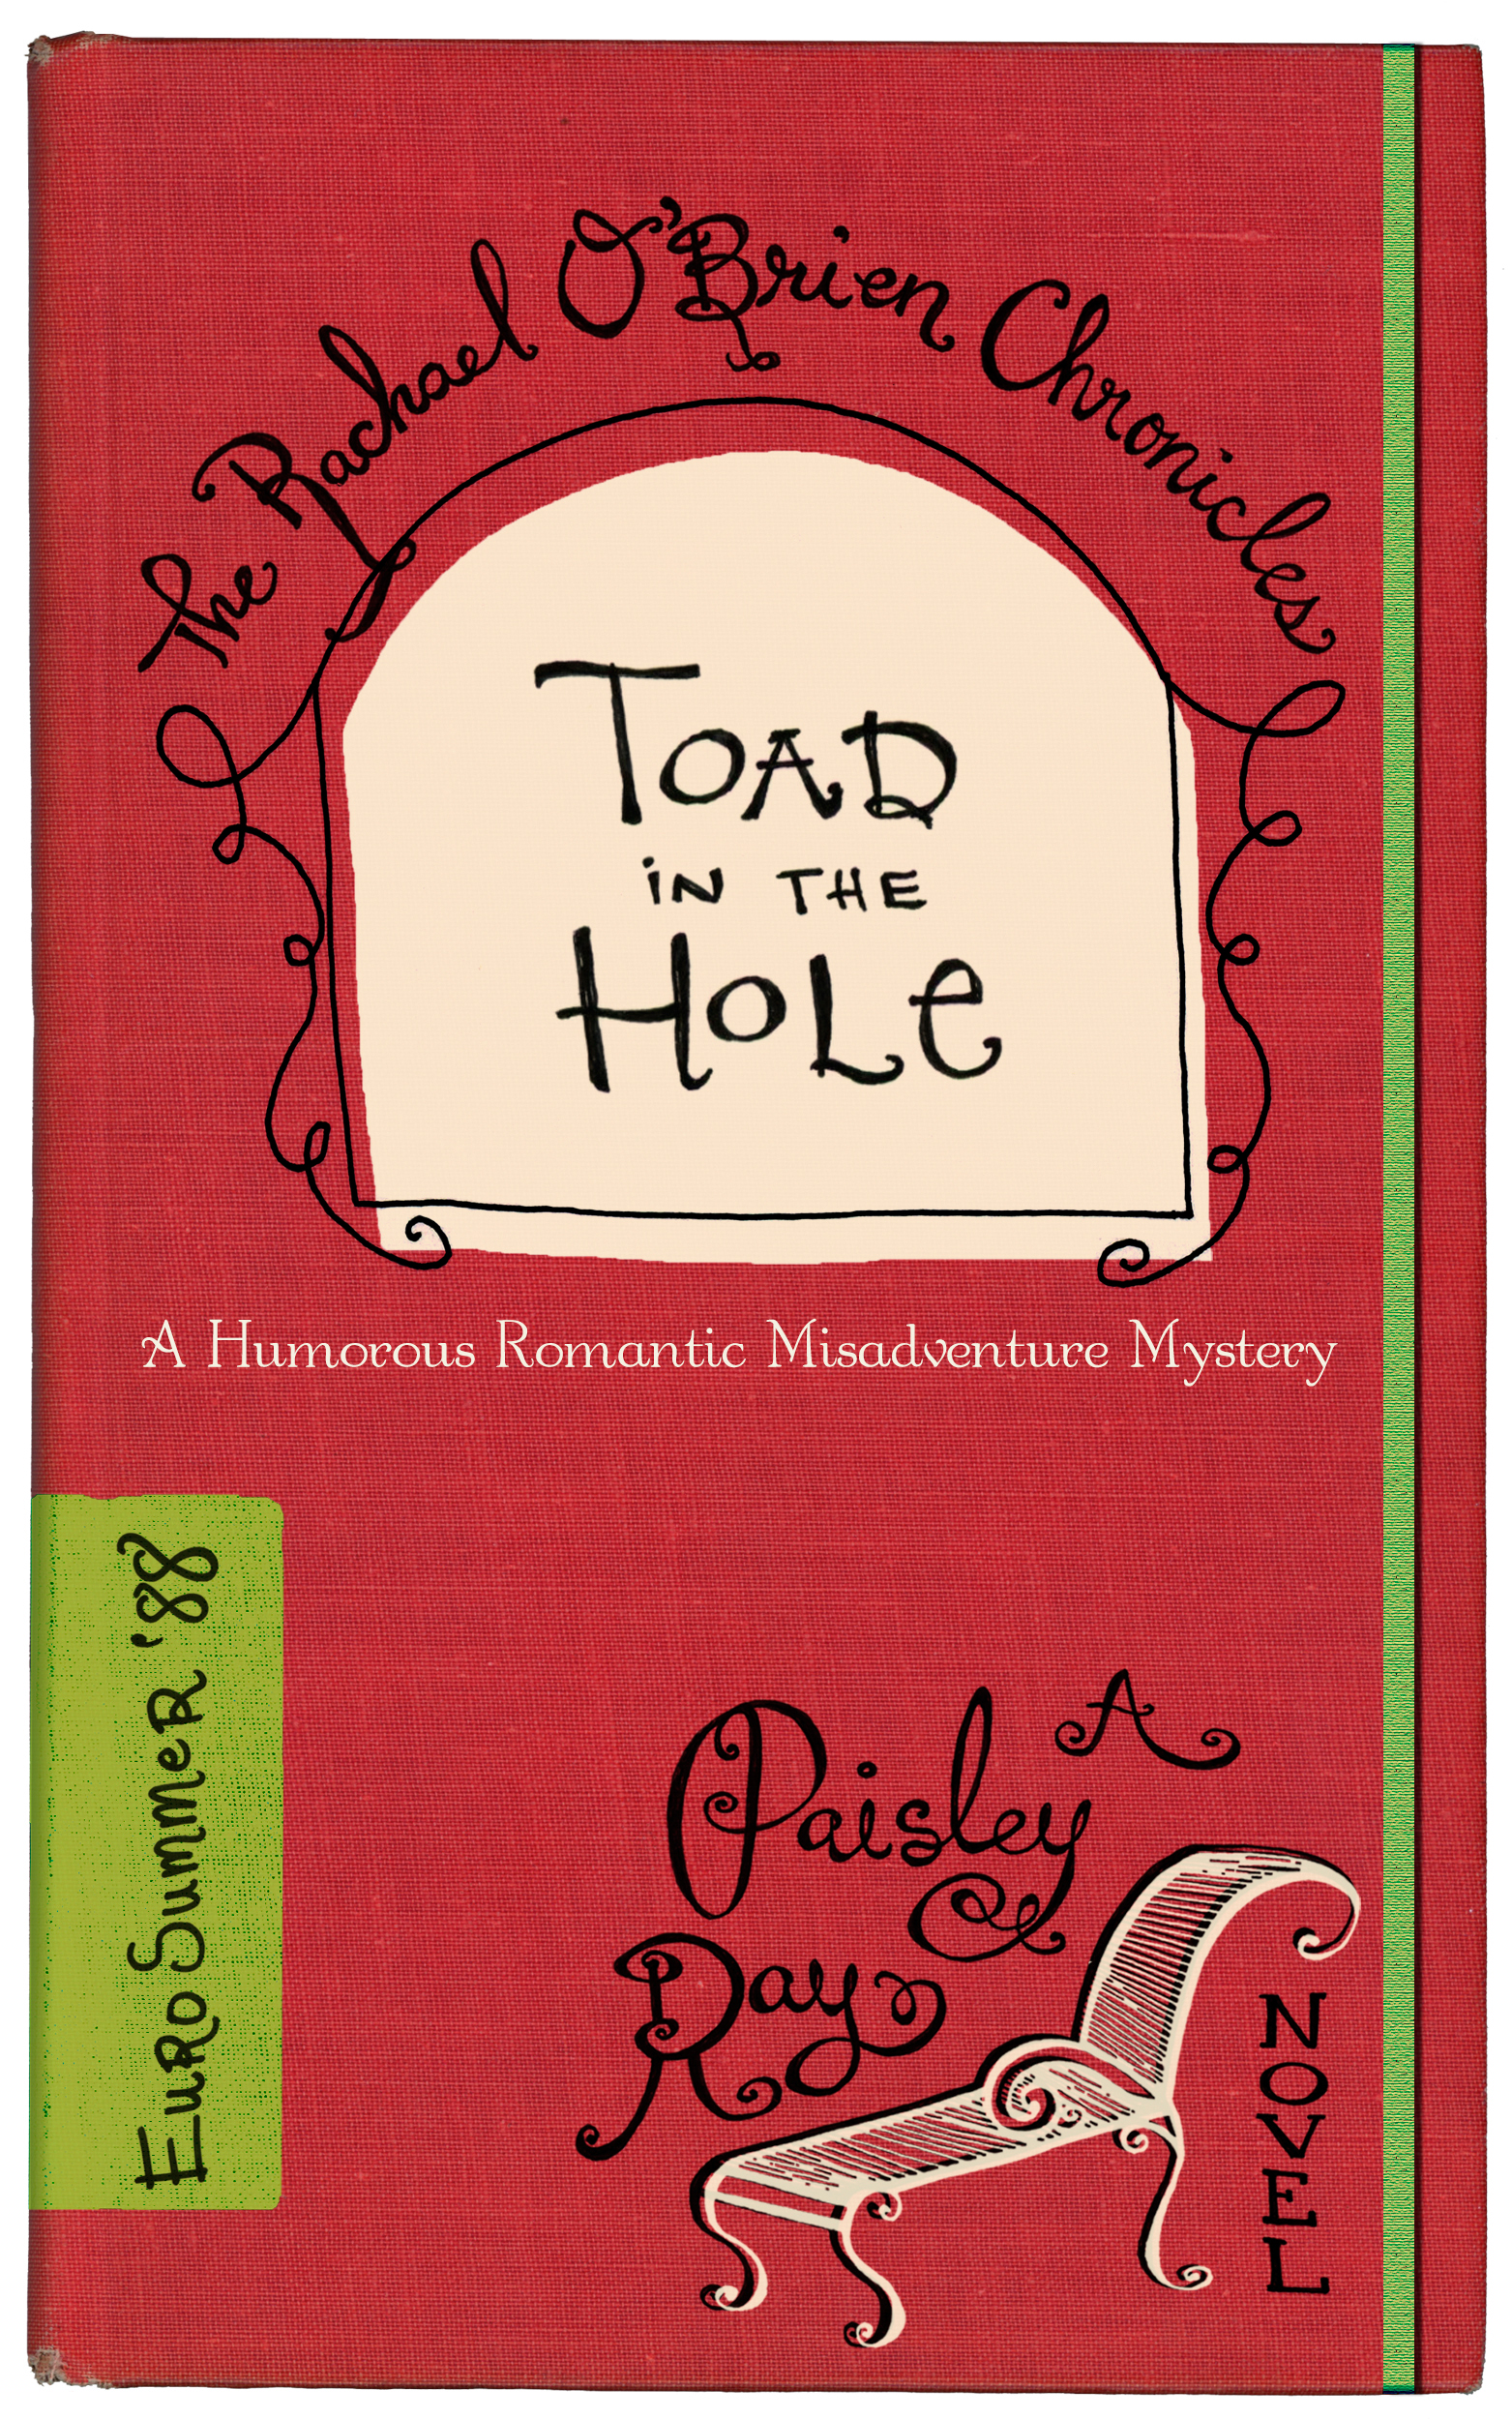 Toad in the Hole mystery book